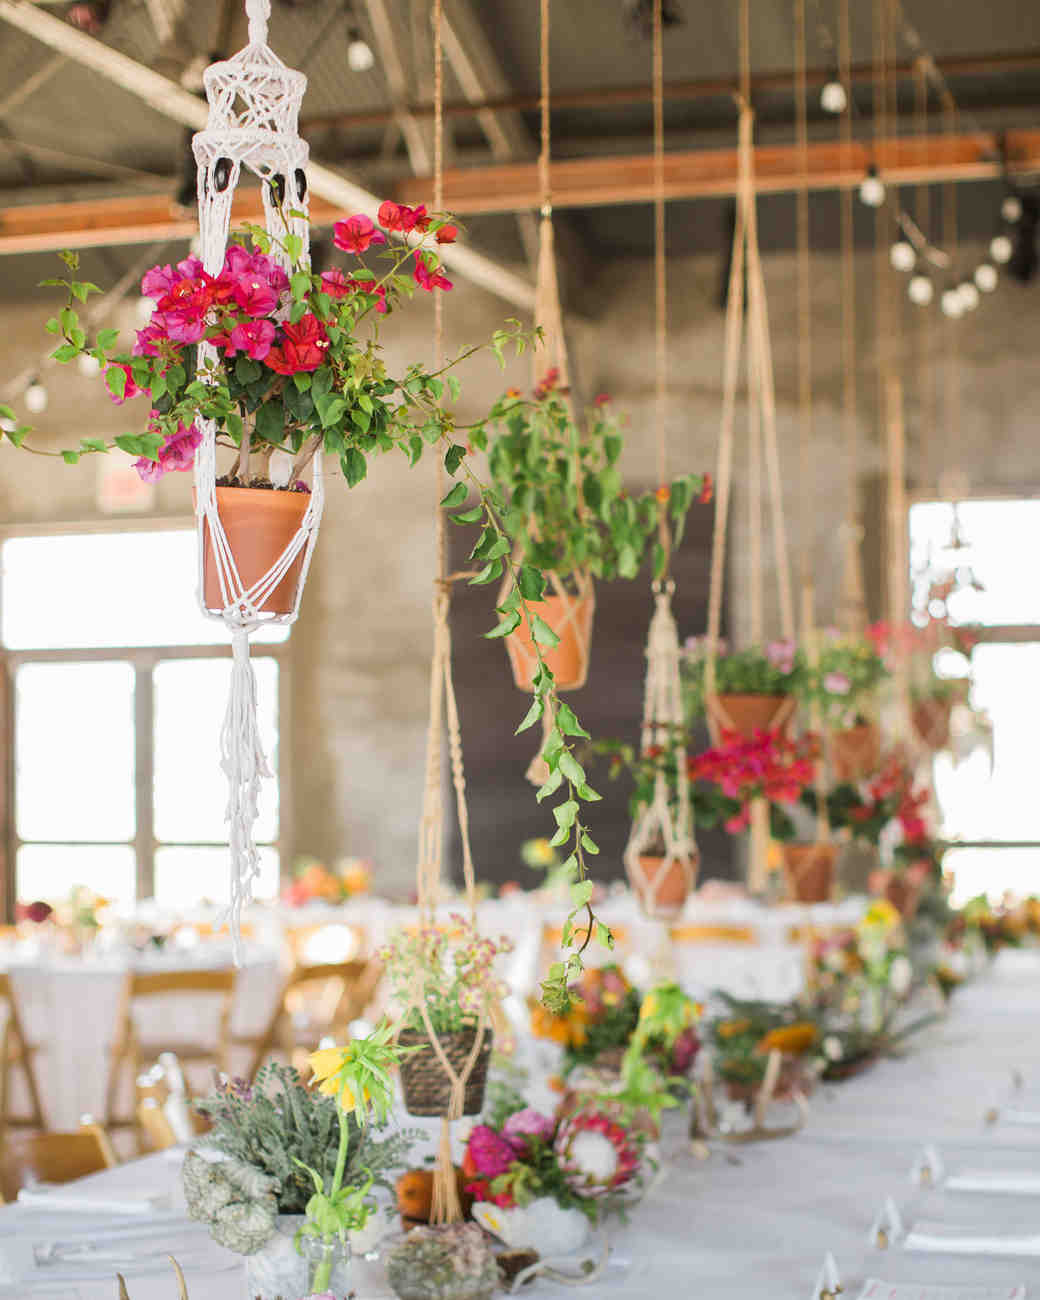 Wedding Head Table Flowers: 40 Of Our Favorite Floral Wedding Centerpieces